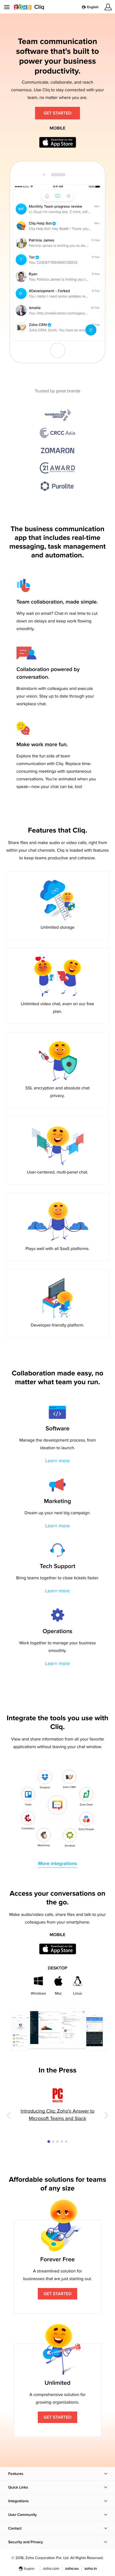 Example of Design for Computers & Electronics, Software, Business & Productivity Software, Mobile Landing Page by zoho.com/cliq/   Mobile Landing Page Design